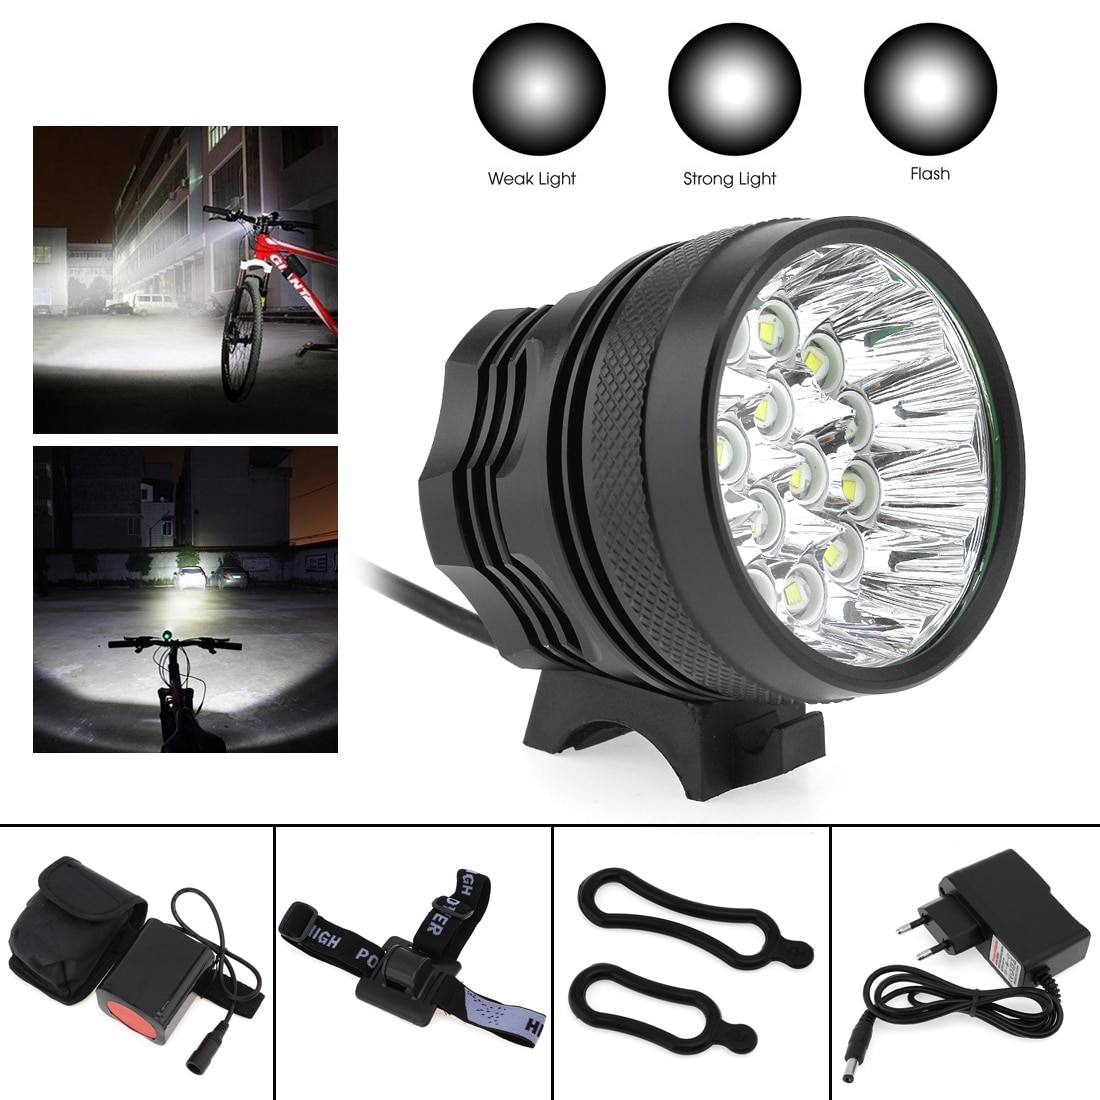 SecurityIng Bicycle Headlights  XM-L T6 LED Bicycle Lamp Bike Light Headlight Cycling Torch with 8.4V 6400mAh Battery Set